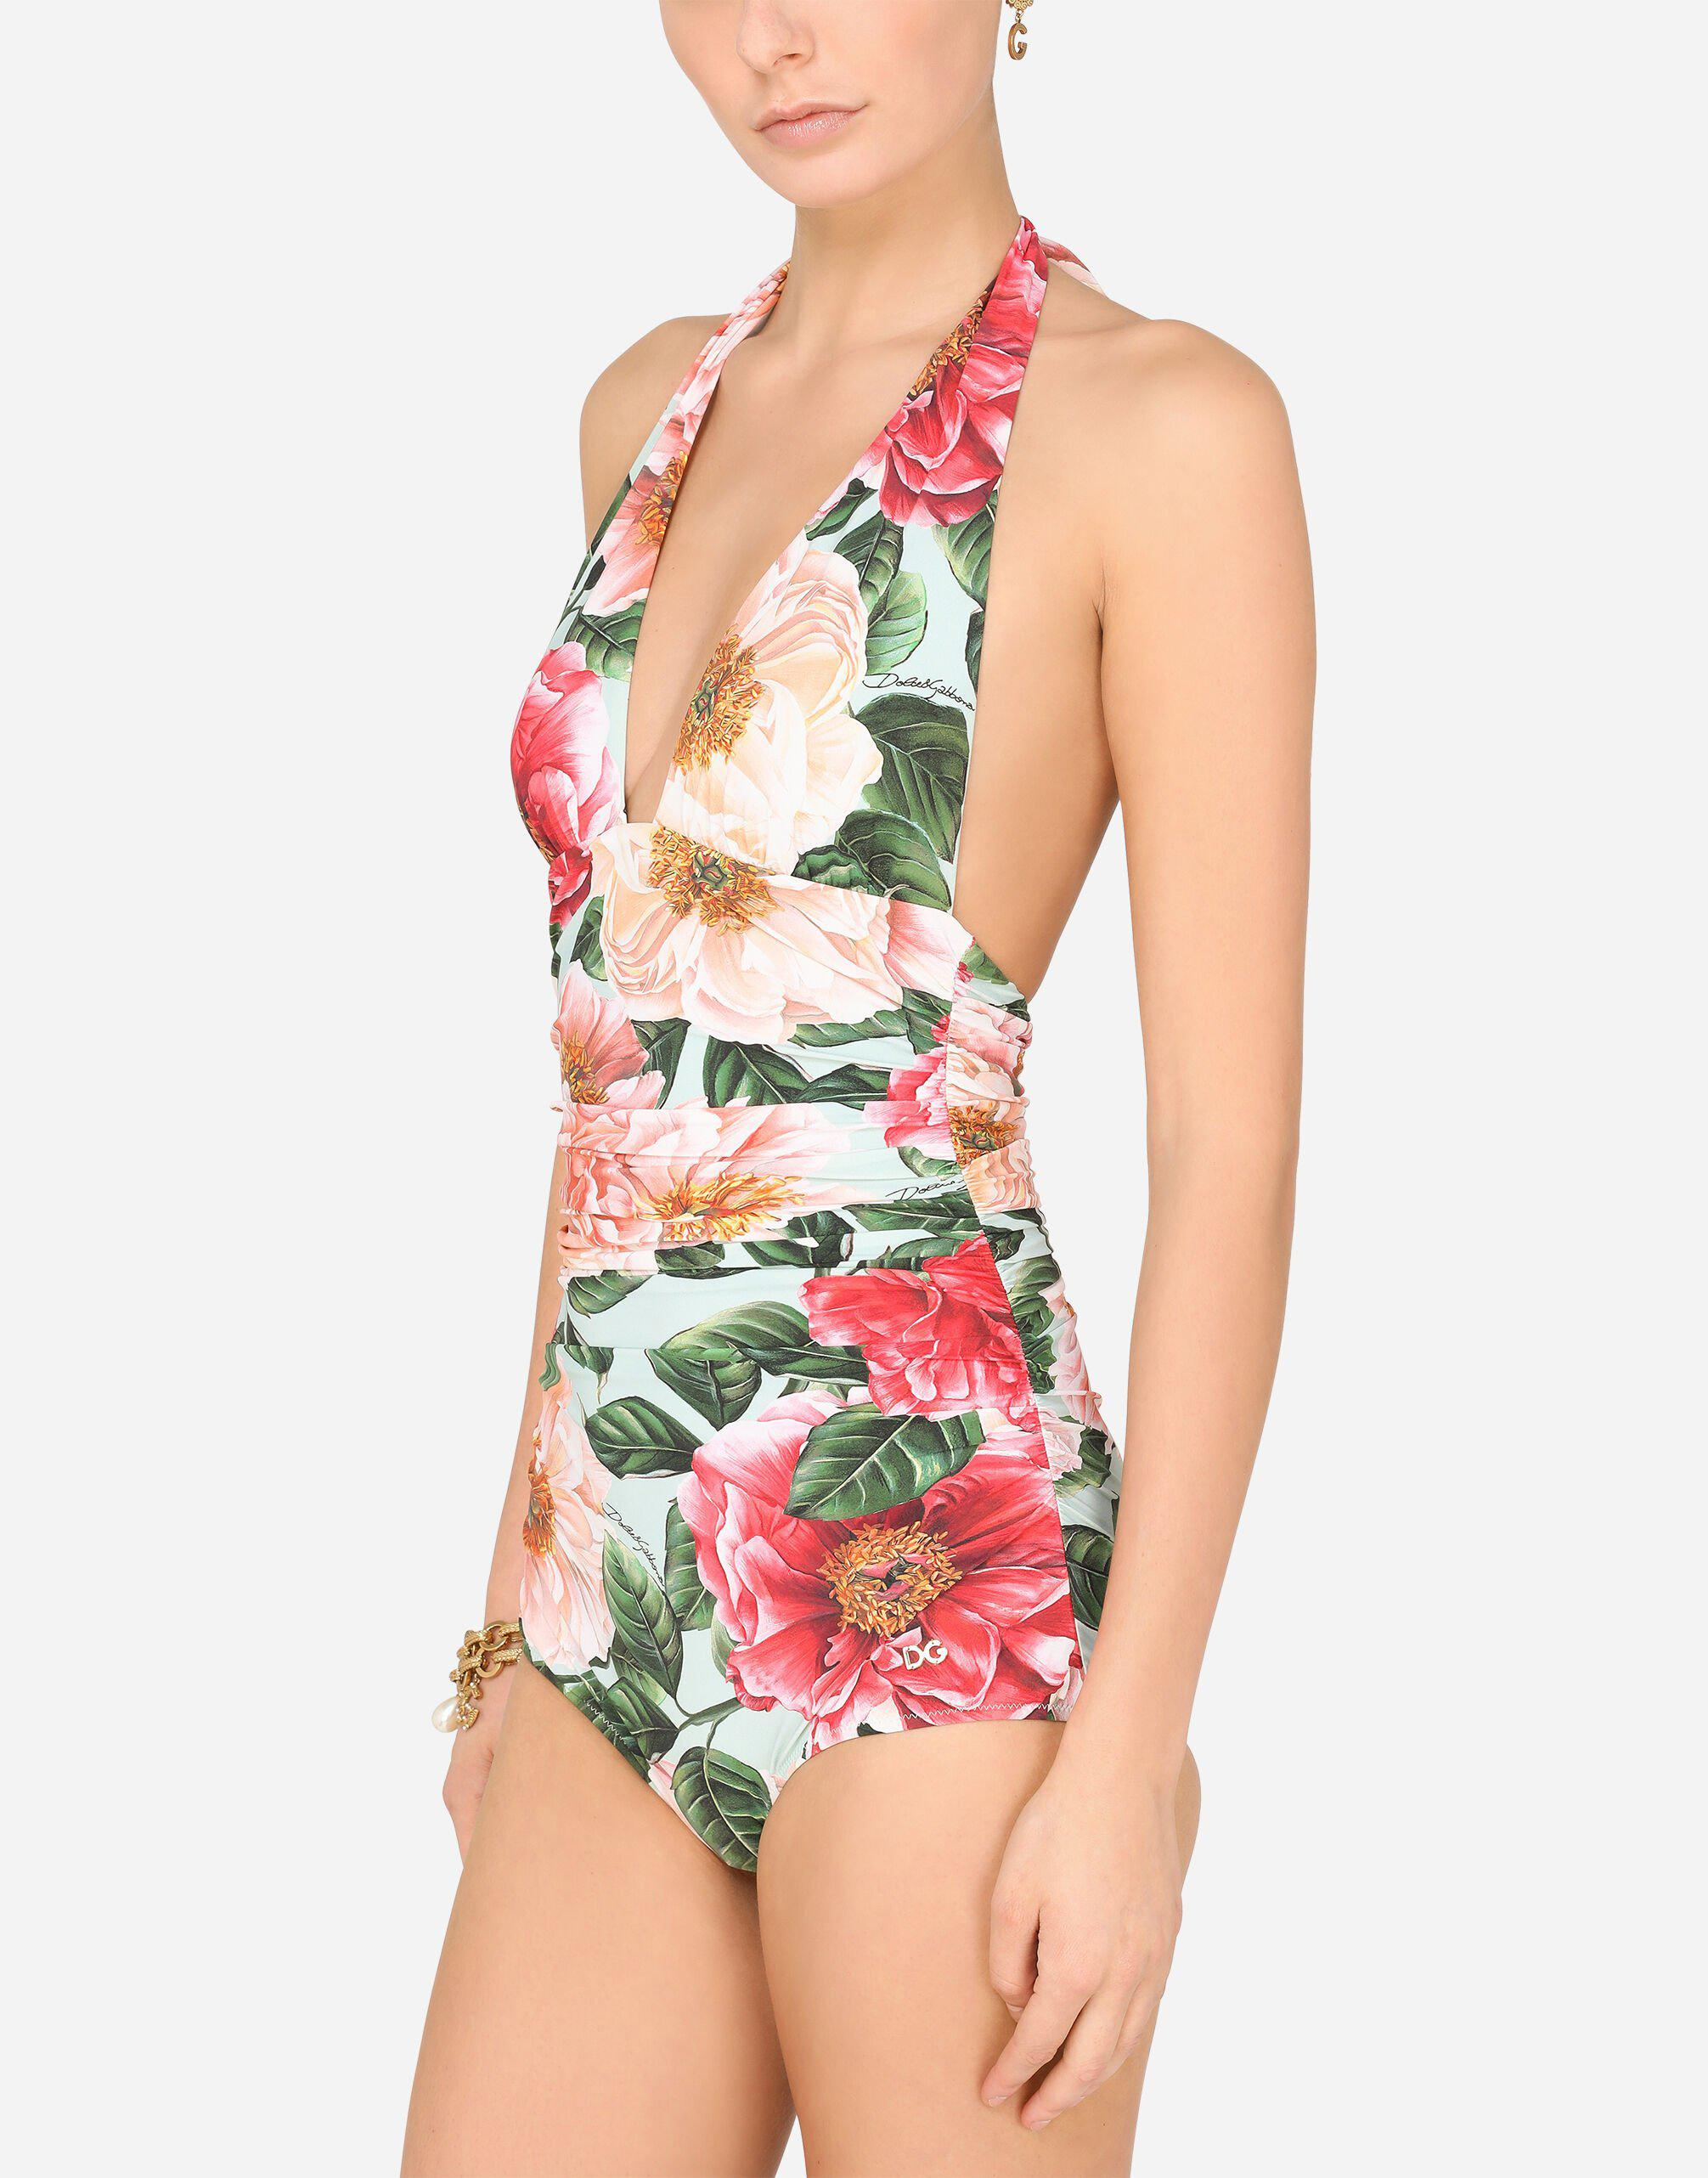 Camellia-print one-piece swimsuit with plunging neckline 1